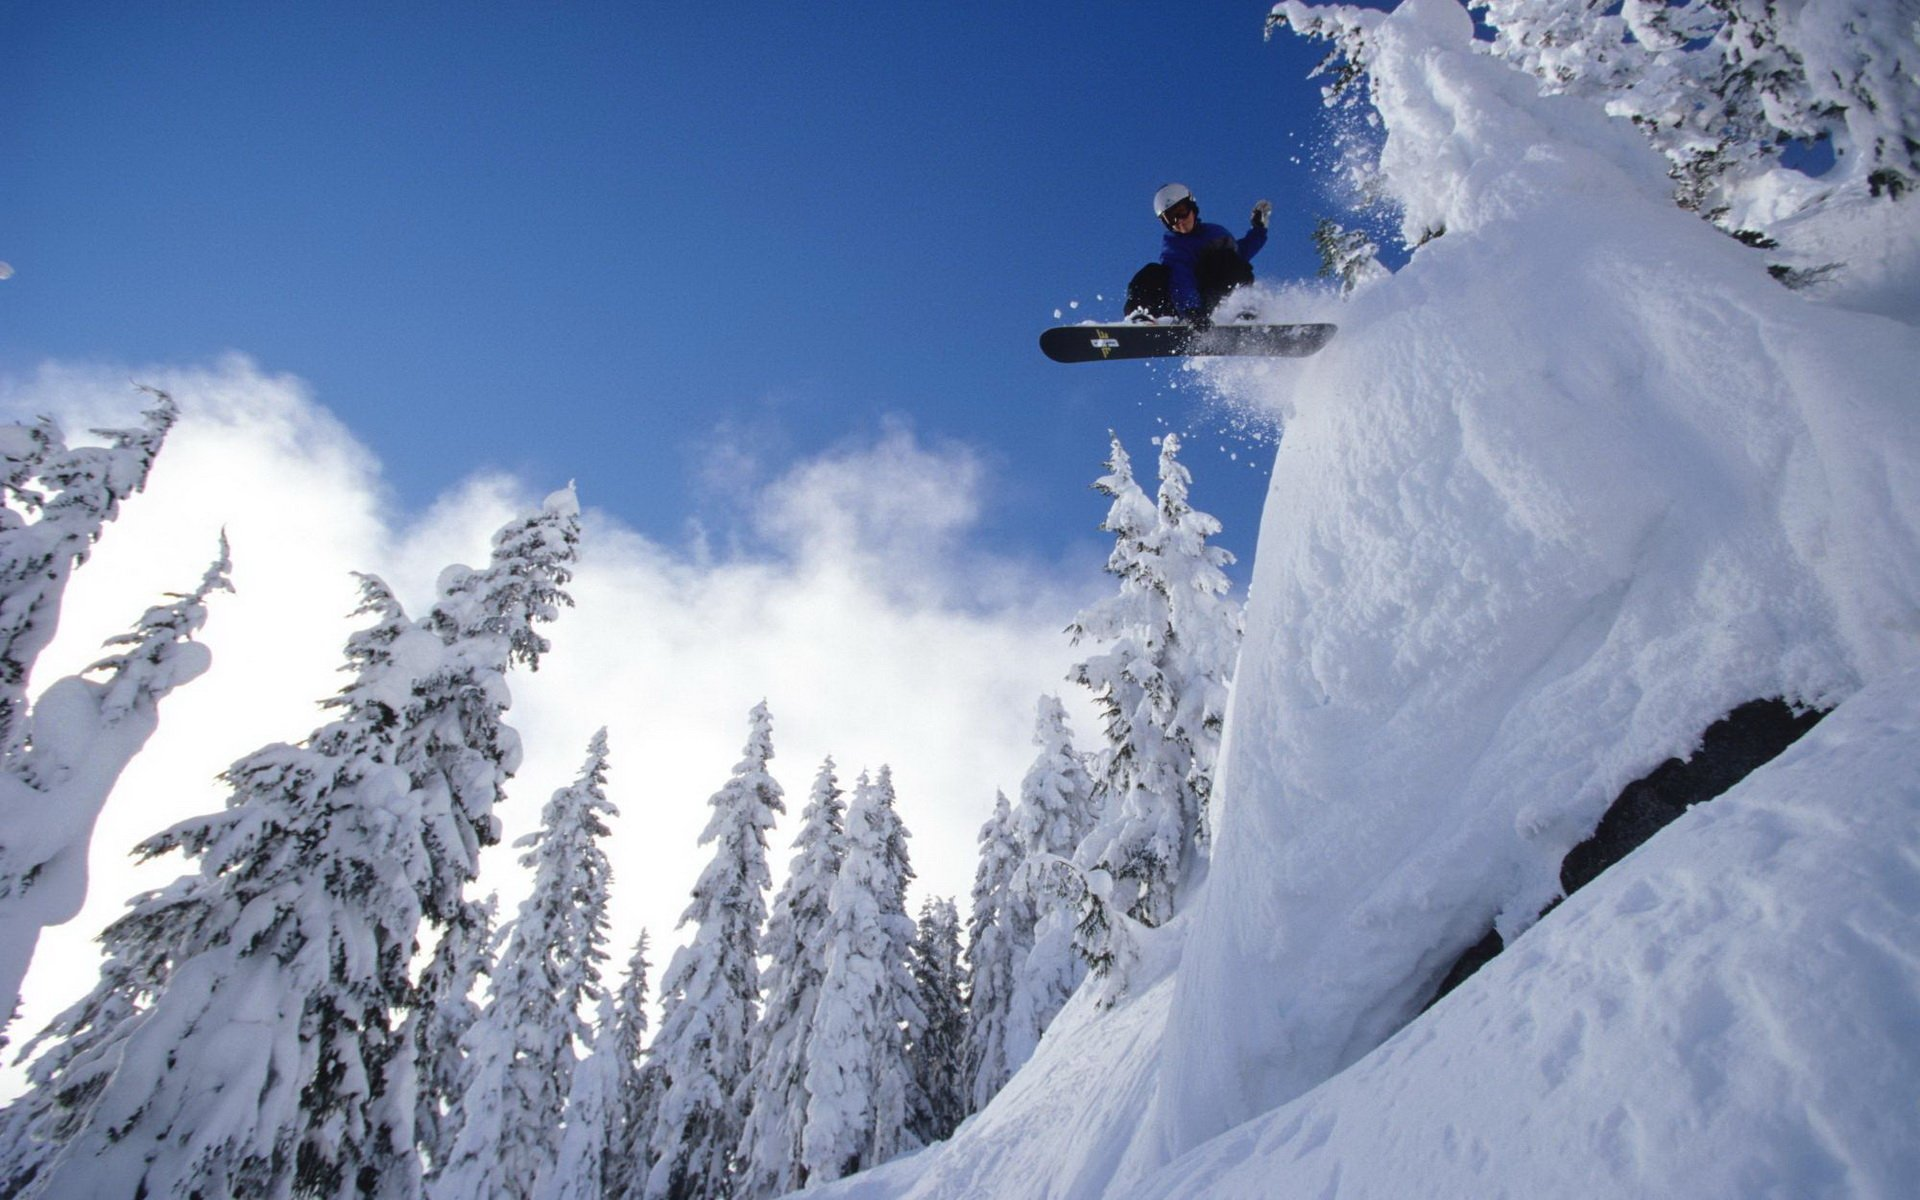 Extreme Snowboarding Wallpaper: Snowboarding Full HD Wallpaper And Background Image